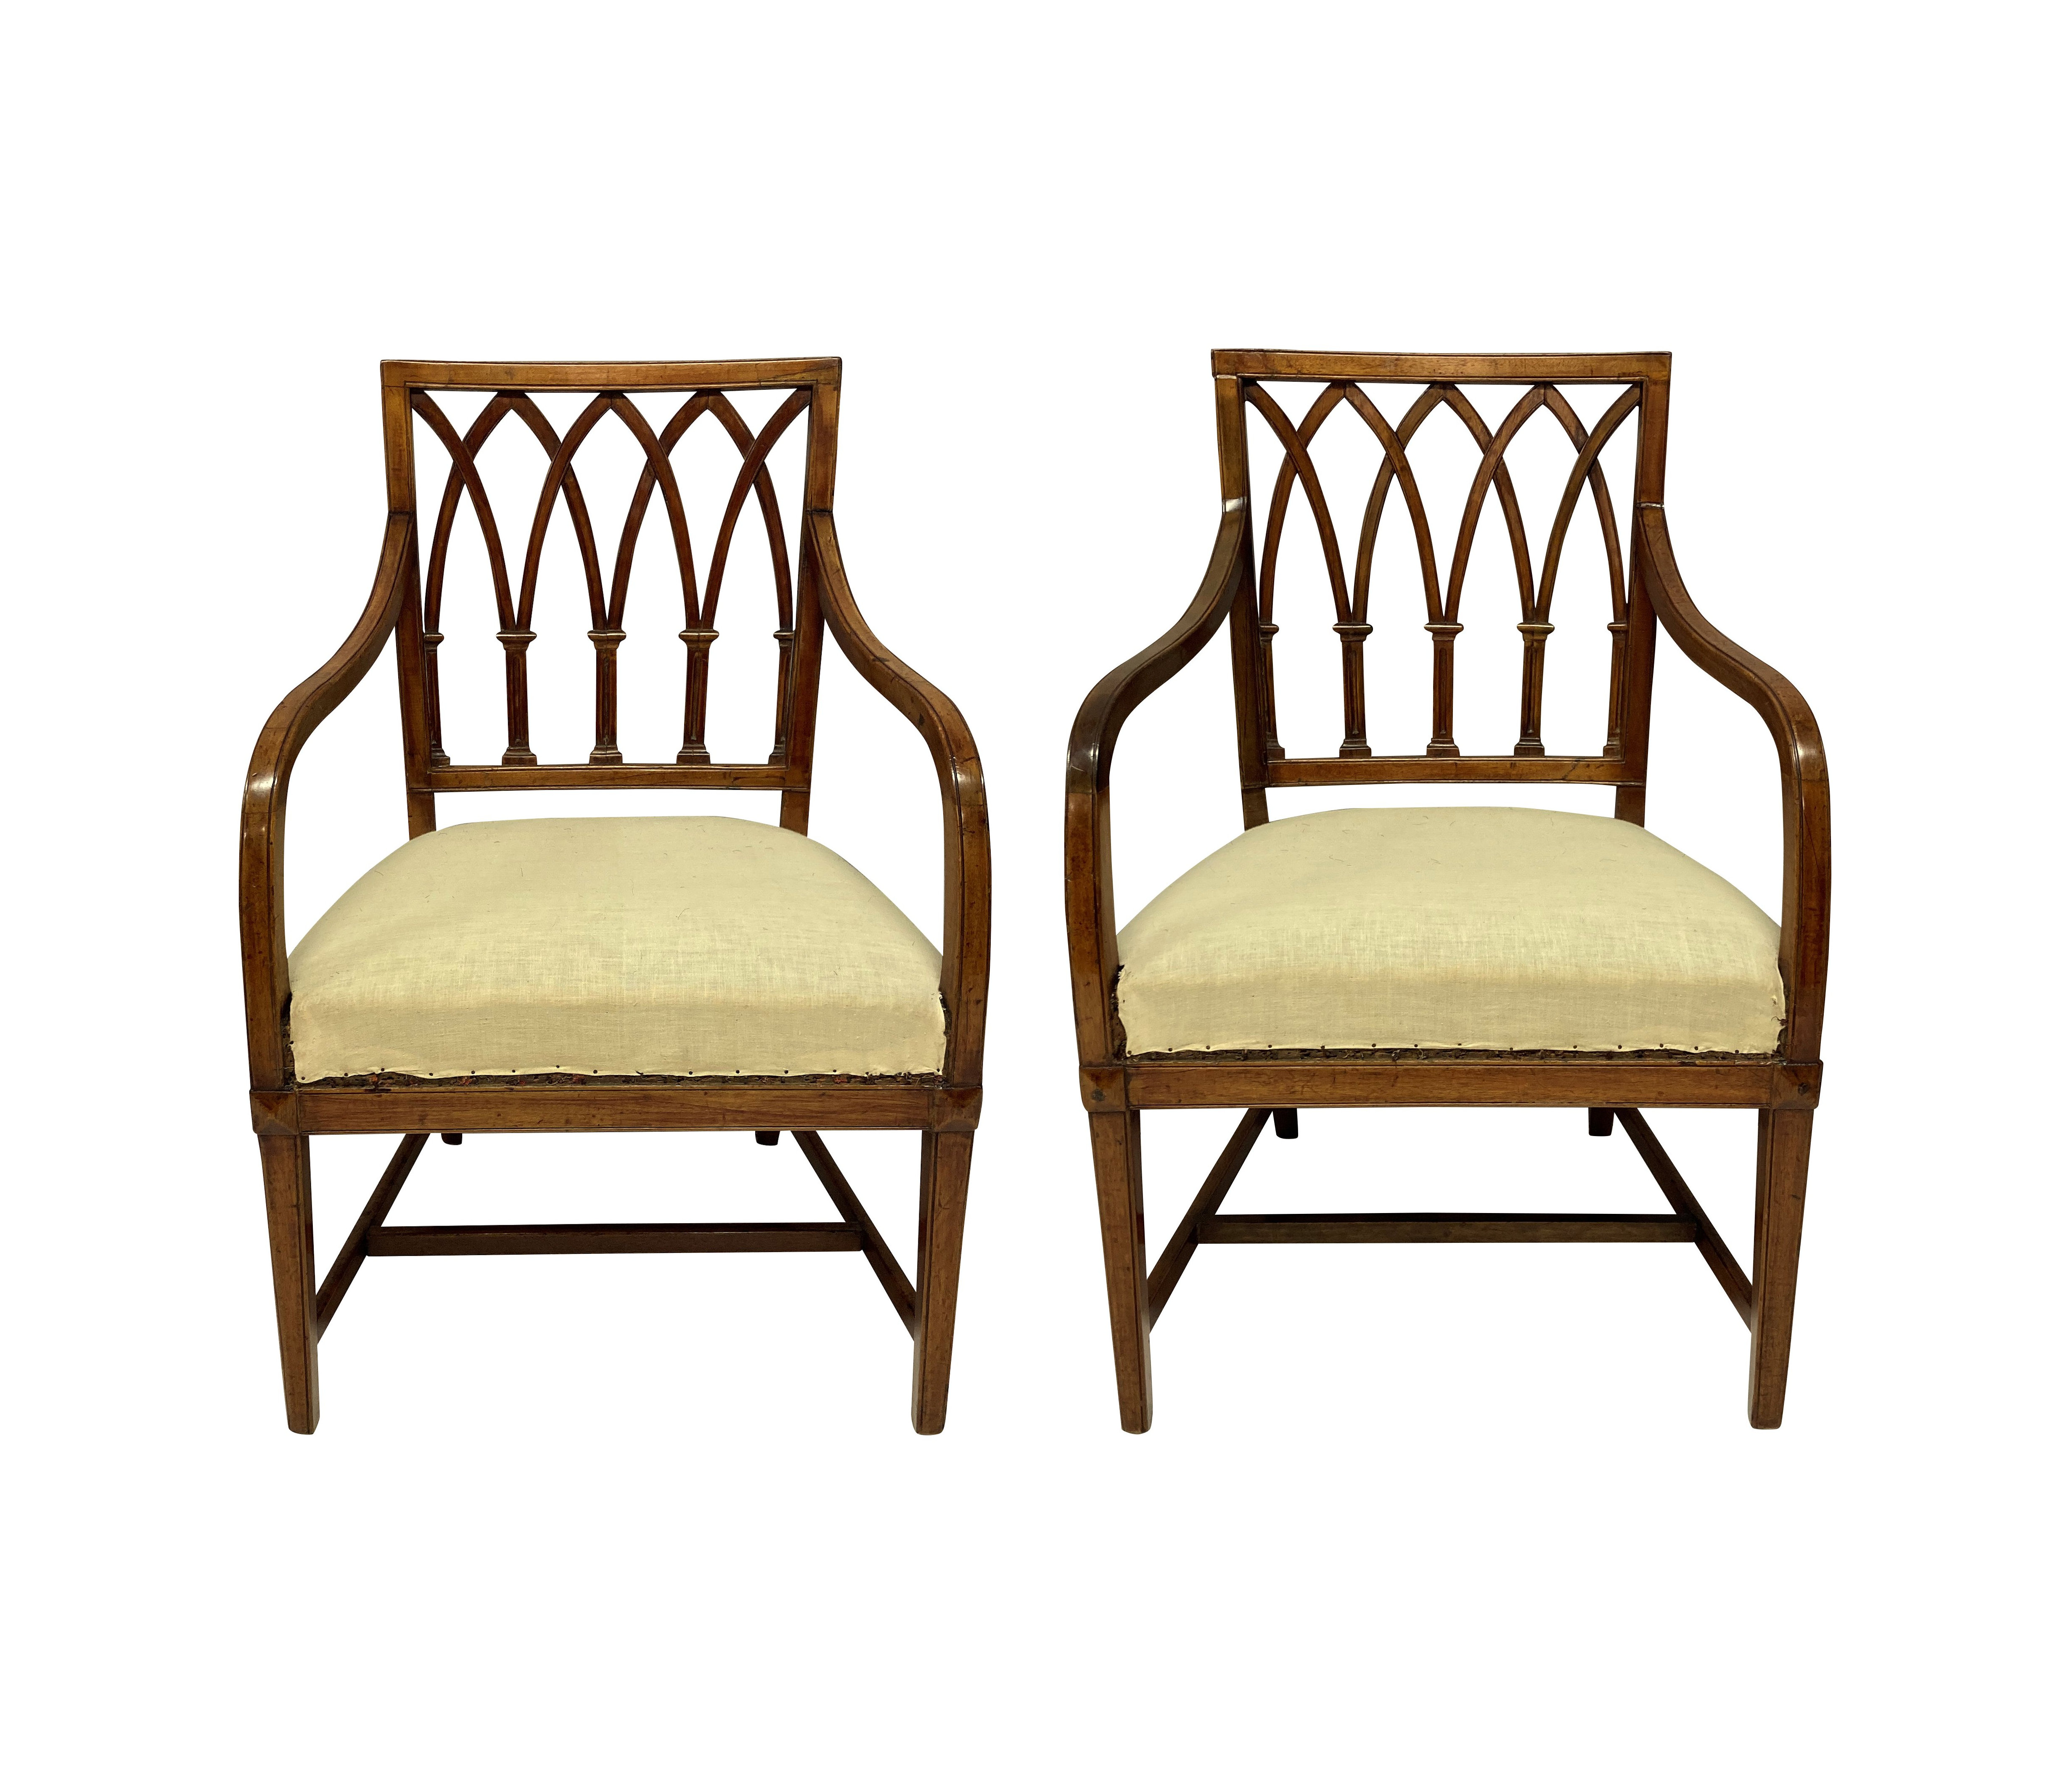 A FINE PAIR OF GEORGE III GOTHIC ARMCHAIRS